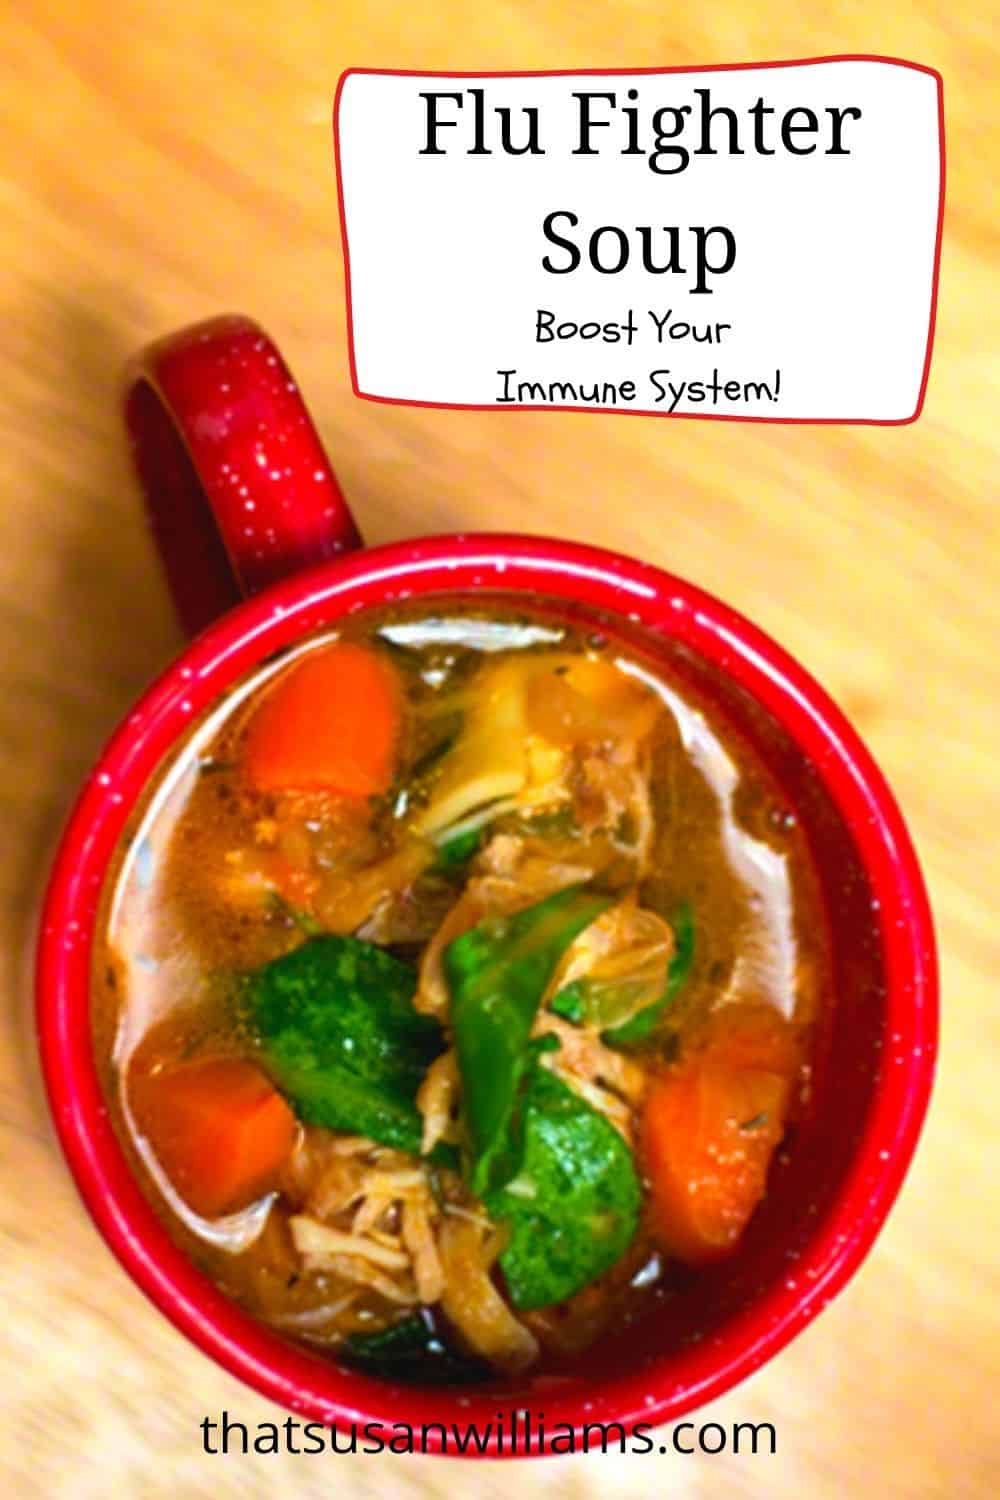 Boost Your Immune System with Flu Fighter Soup